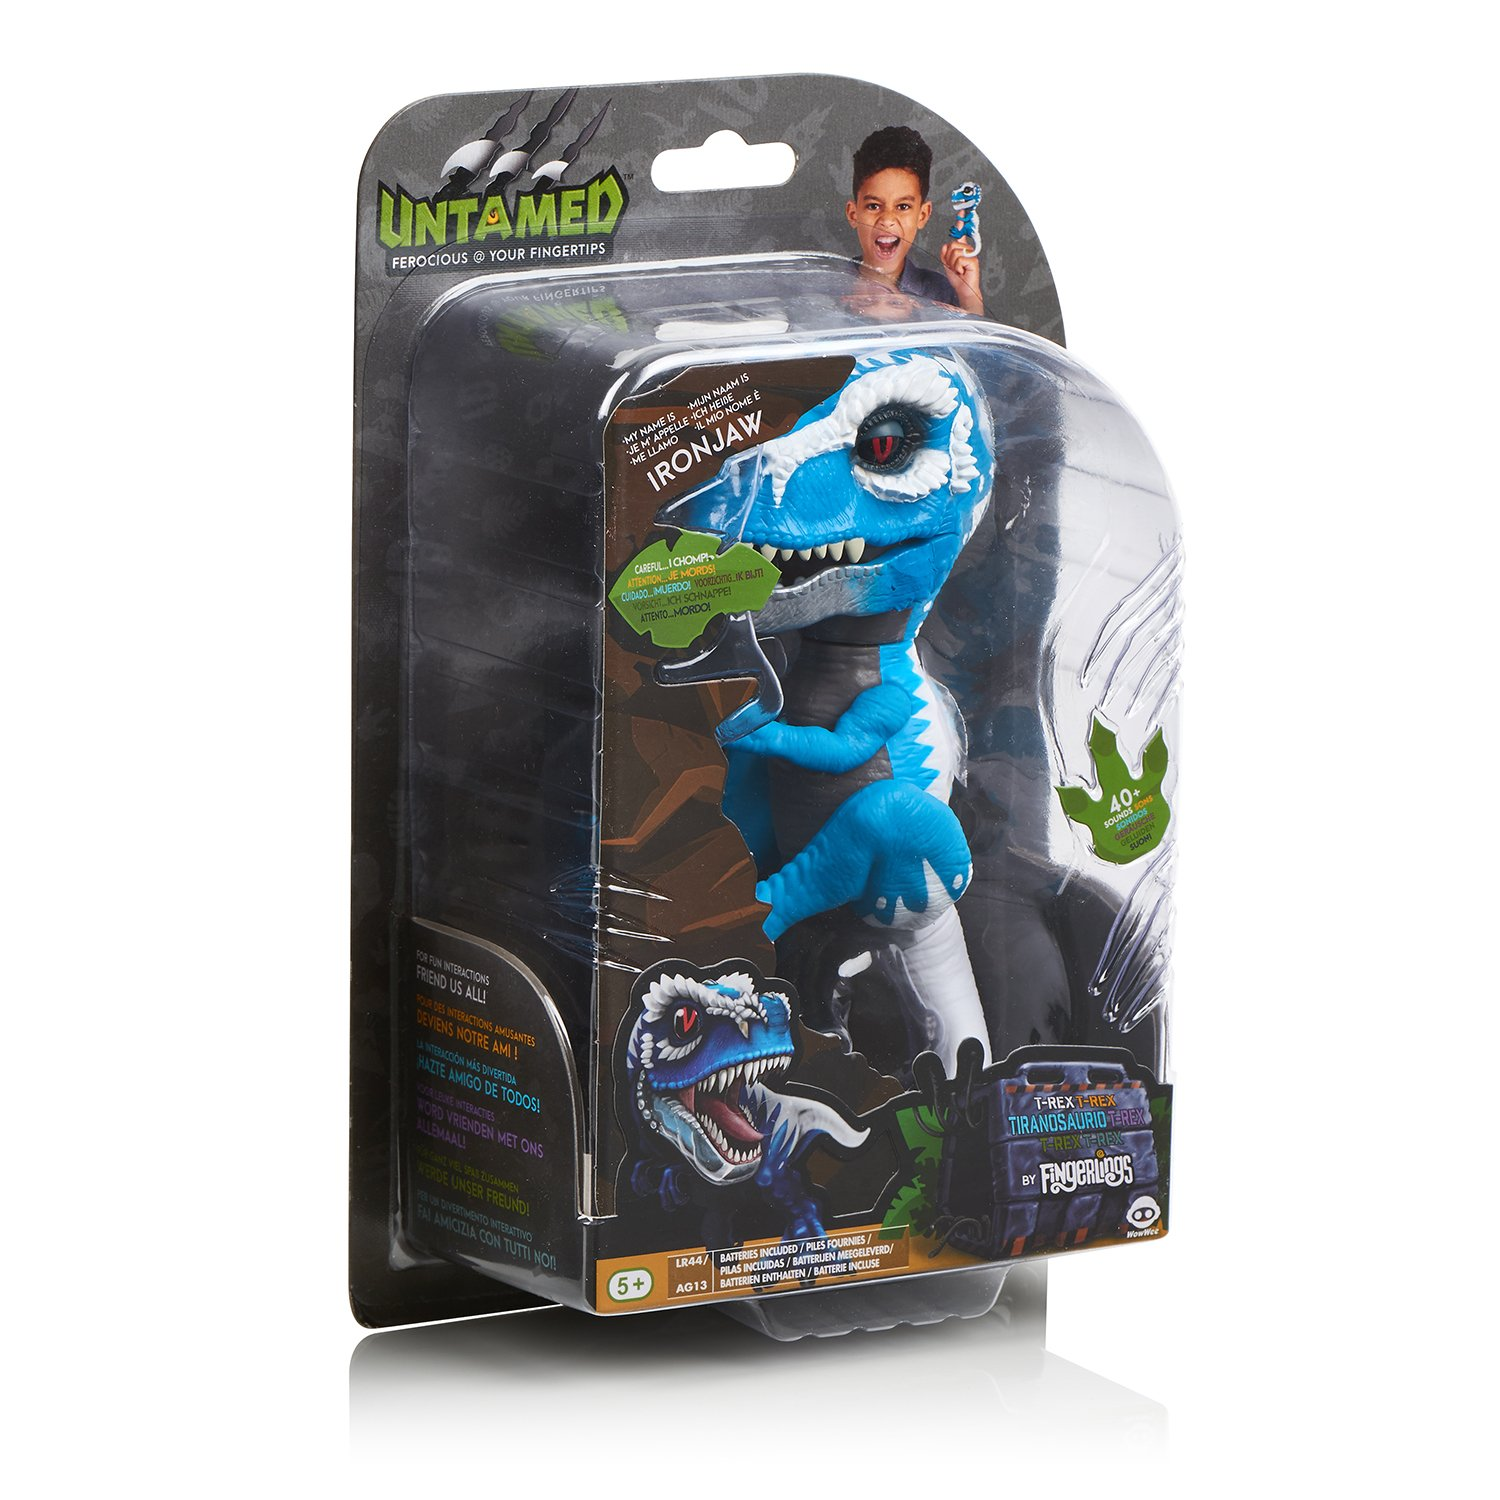 WowWee Untamed T-Rex by Fingerlings Ironjaw (Blue) -Interactive Collectible Dinosaur by WowWee (Image #9)